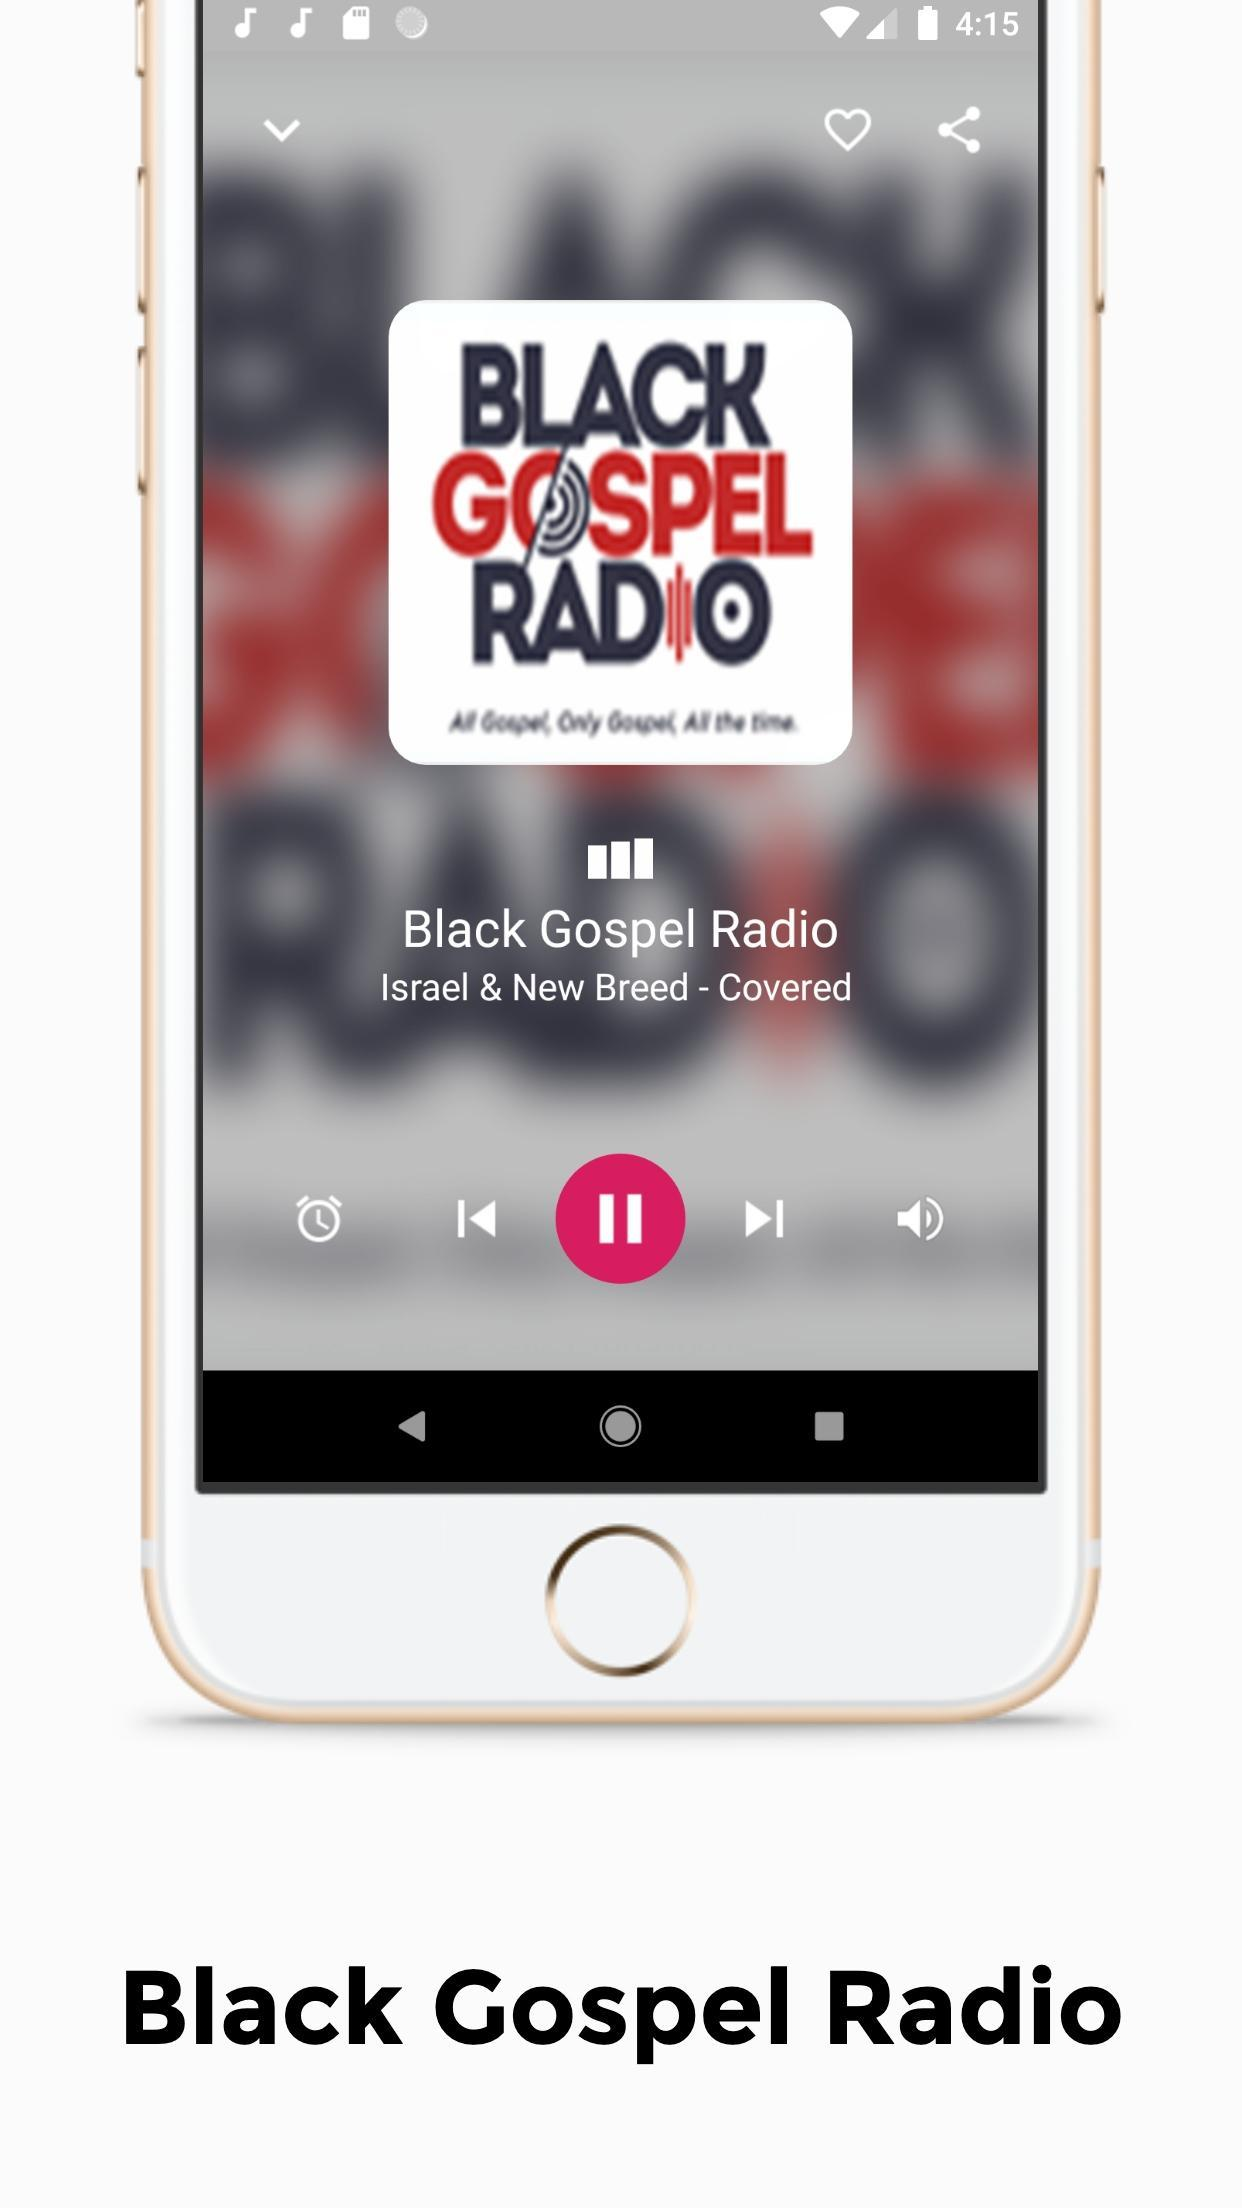 Black Gospel Radio Music Station Free for Android - APK Download